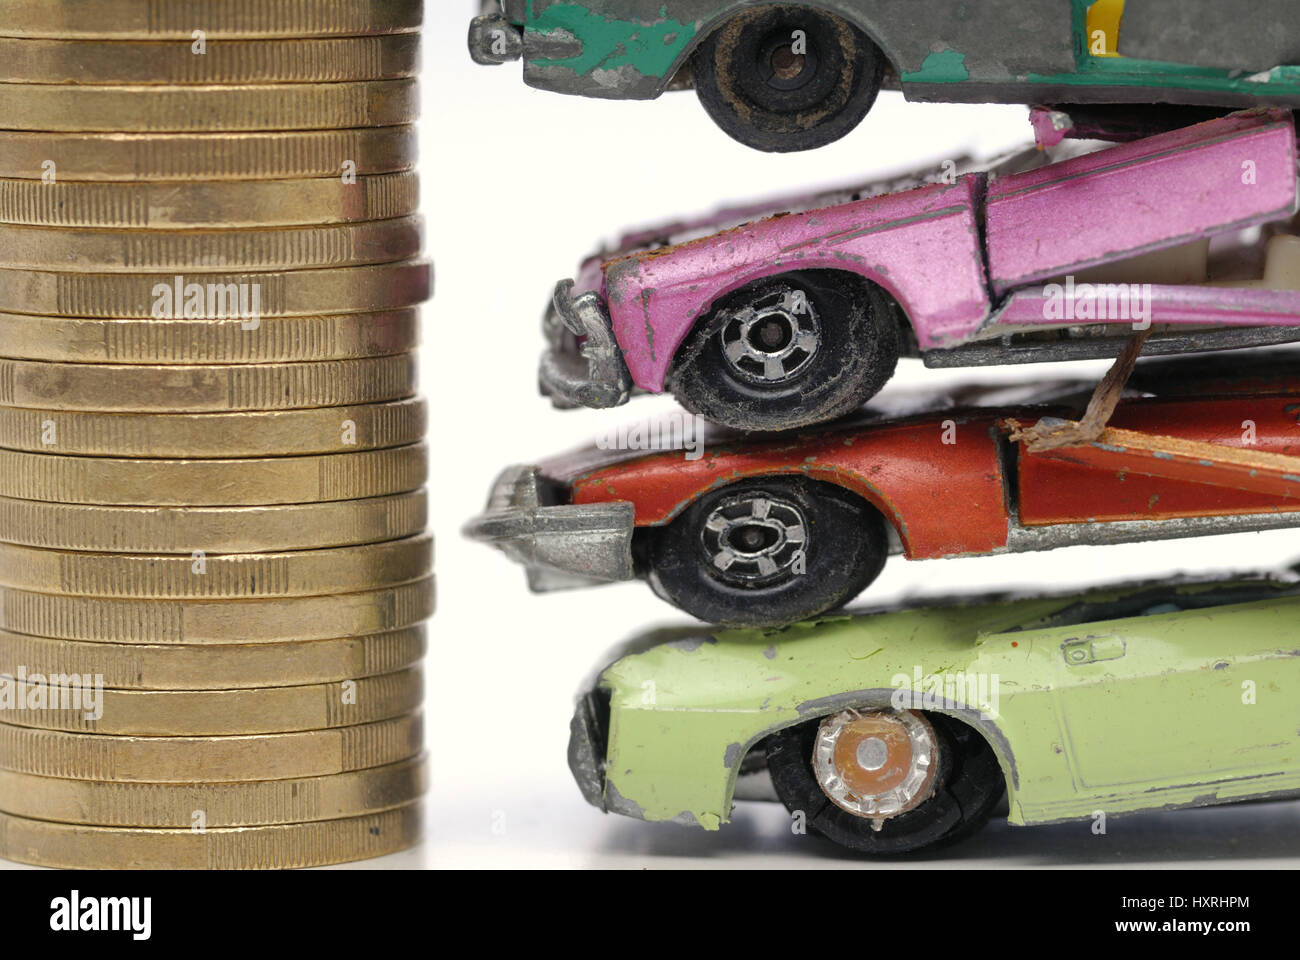 Car, cars, miniature car, miniature cars, broken, broken, scrapped ...